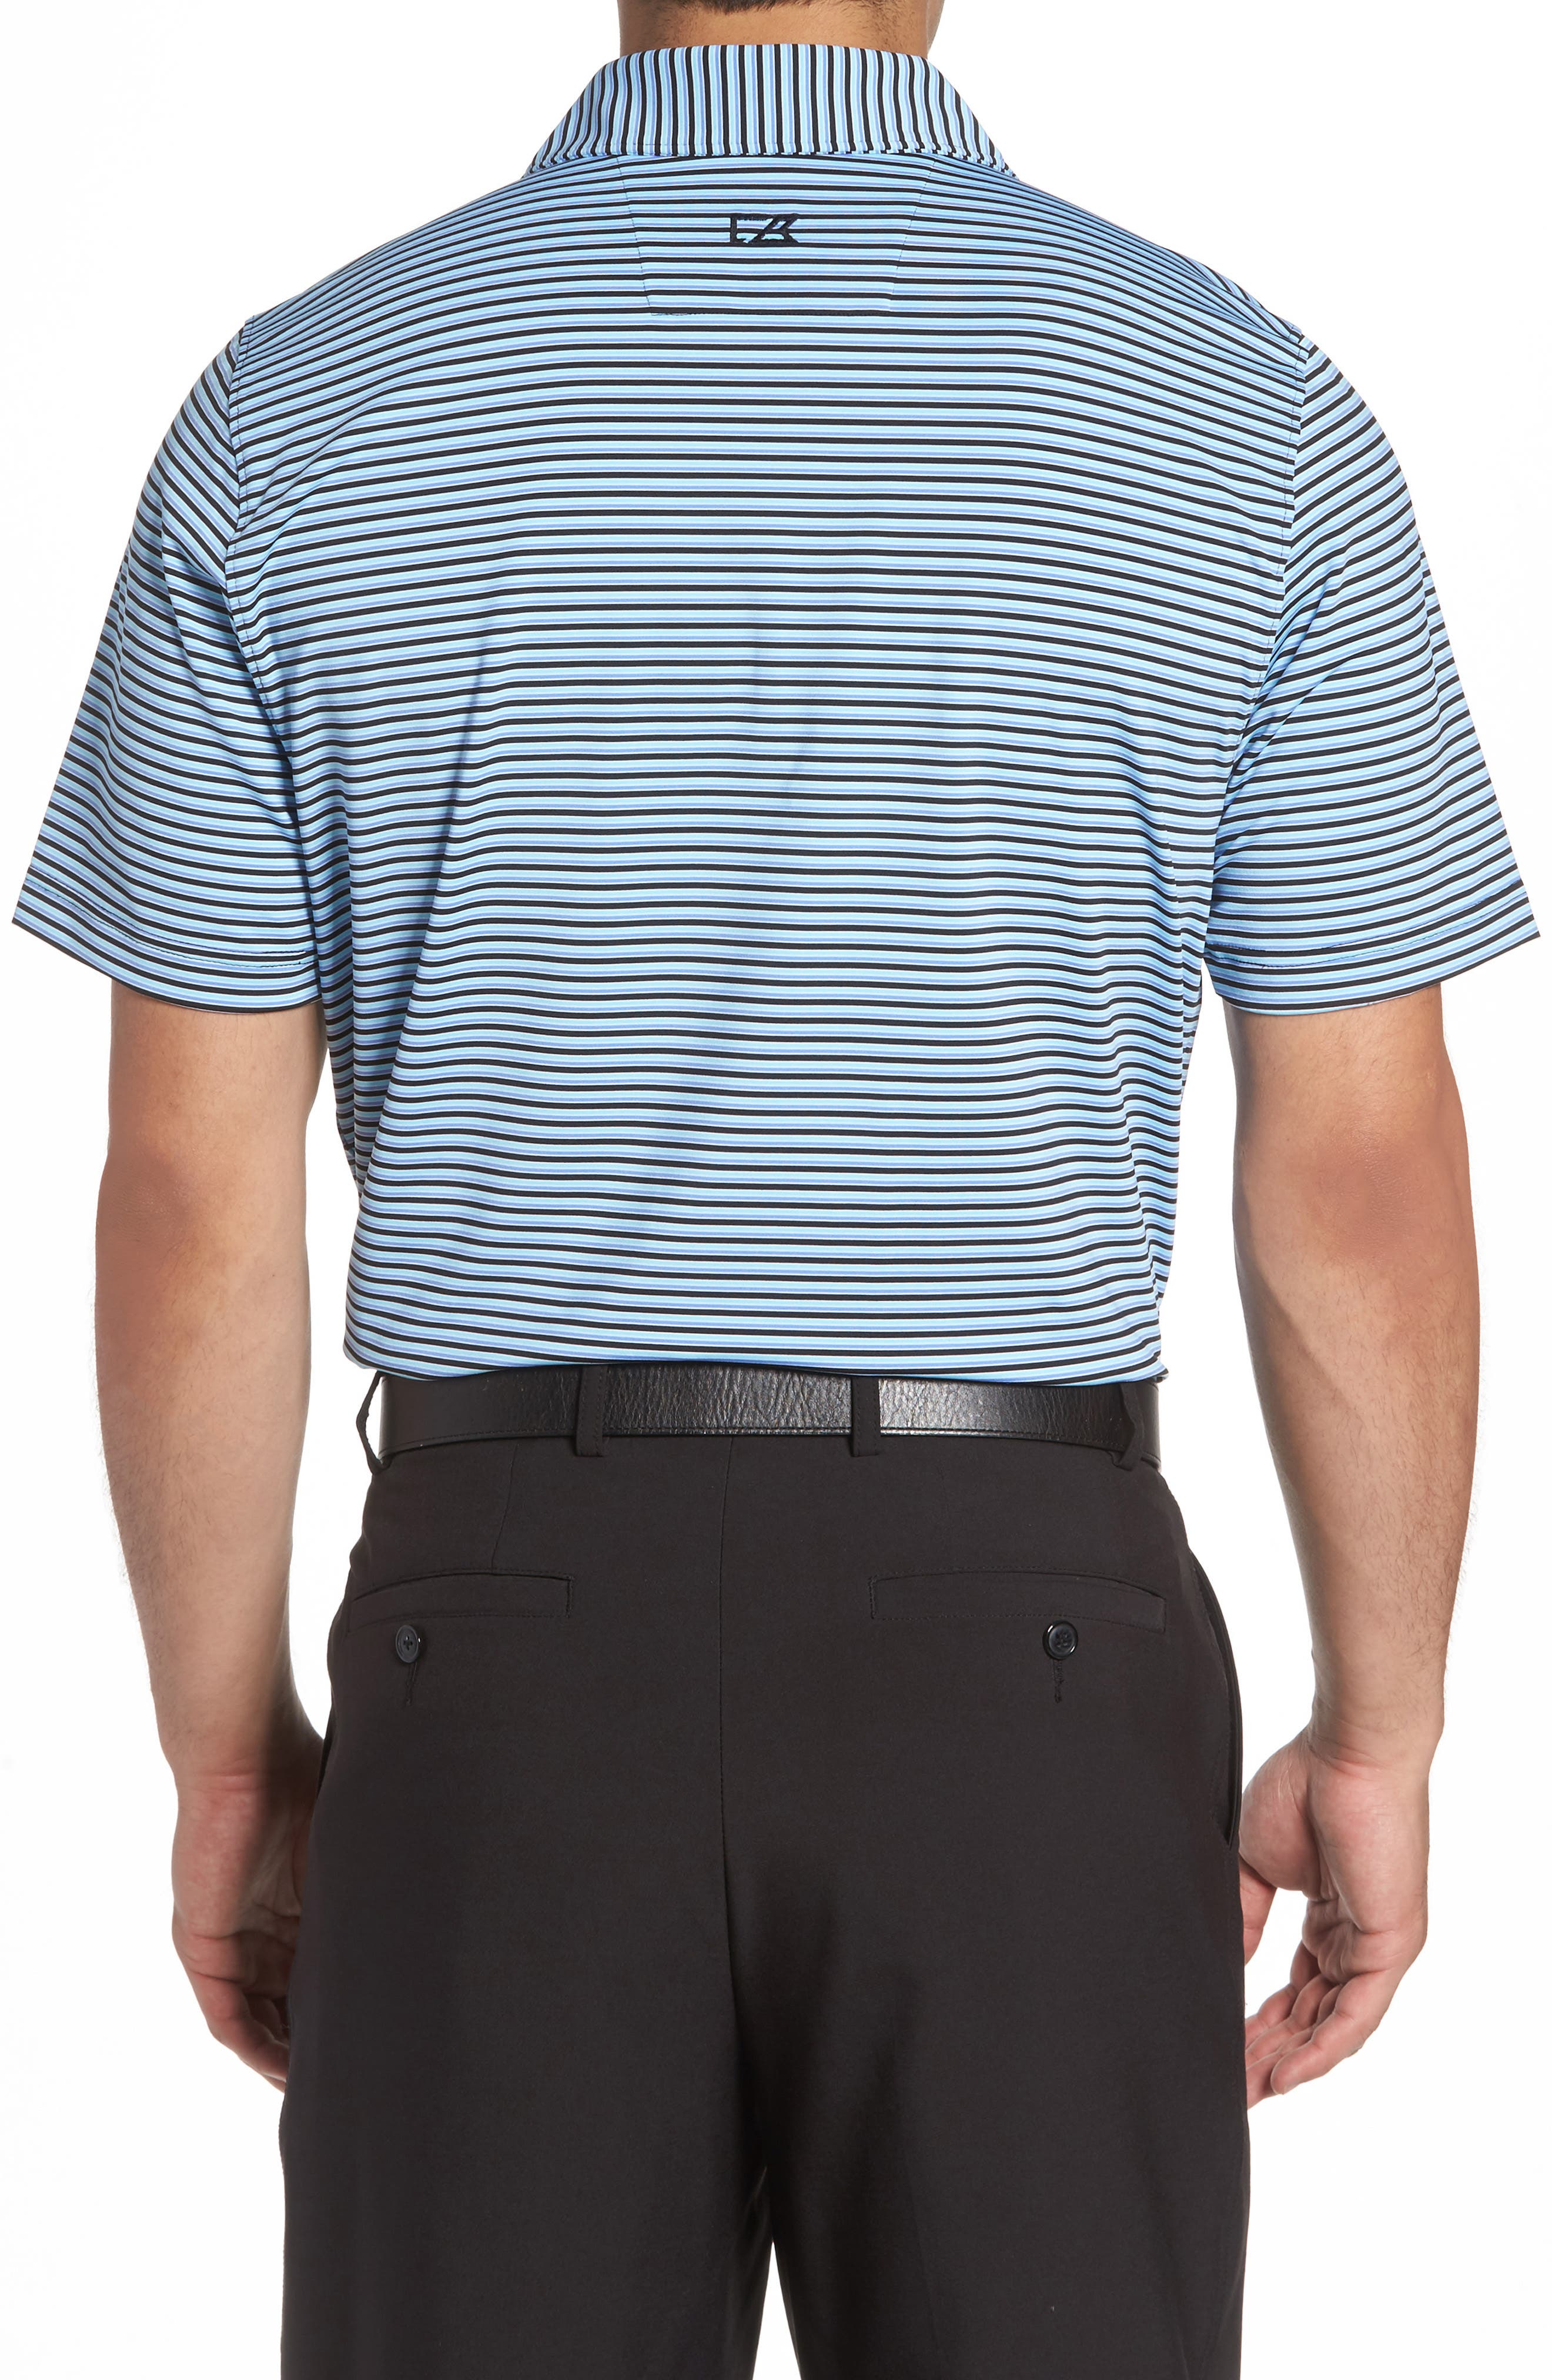 Alternate Image 2  - Cutter & Buck Division Stripe Jersey Polo